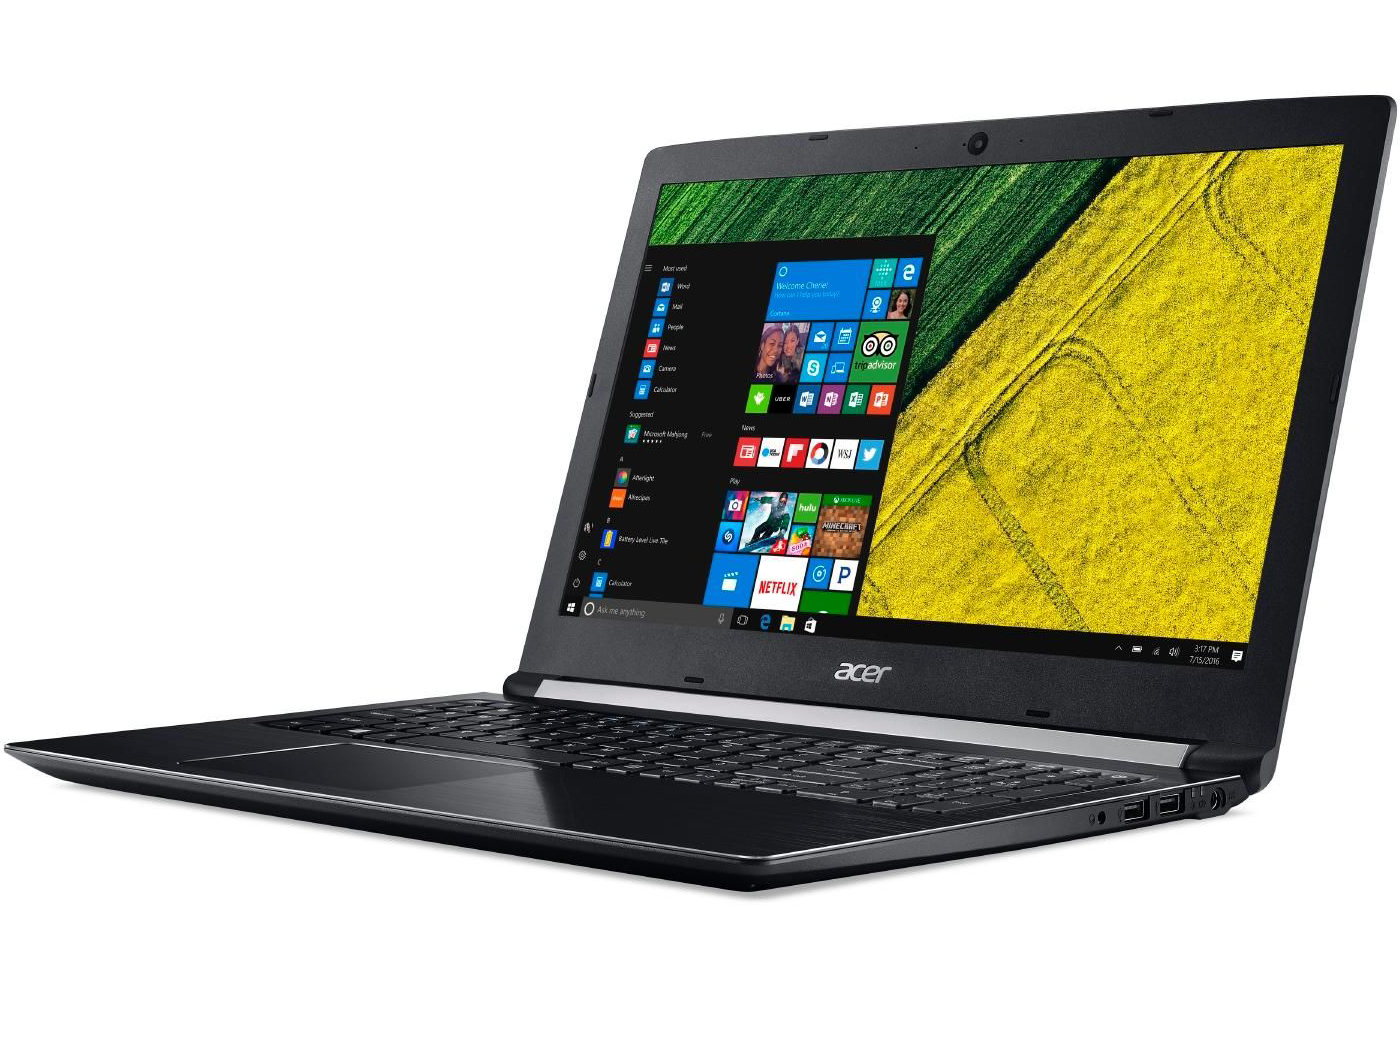 ACER ASPIRE 5000 WIRELESS LAN DRIVERS FOR WINDOWS 8